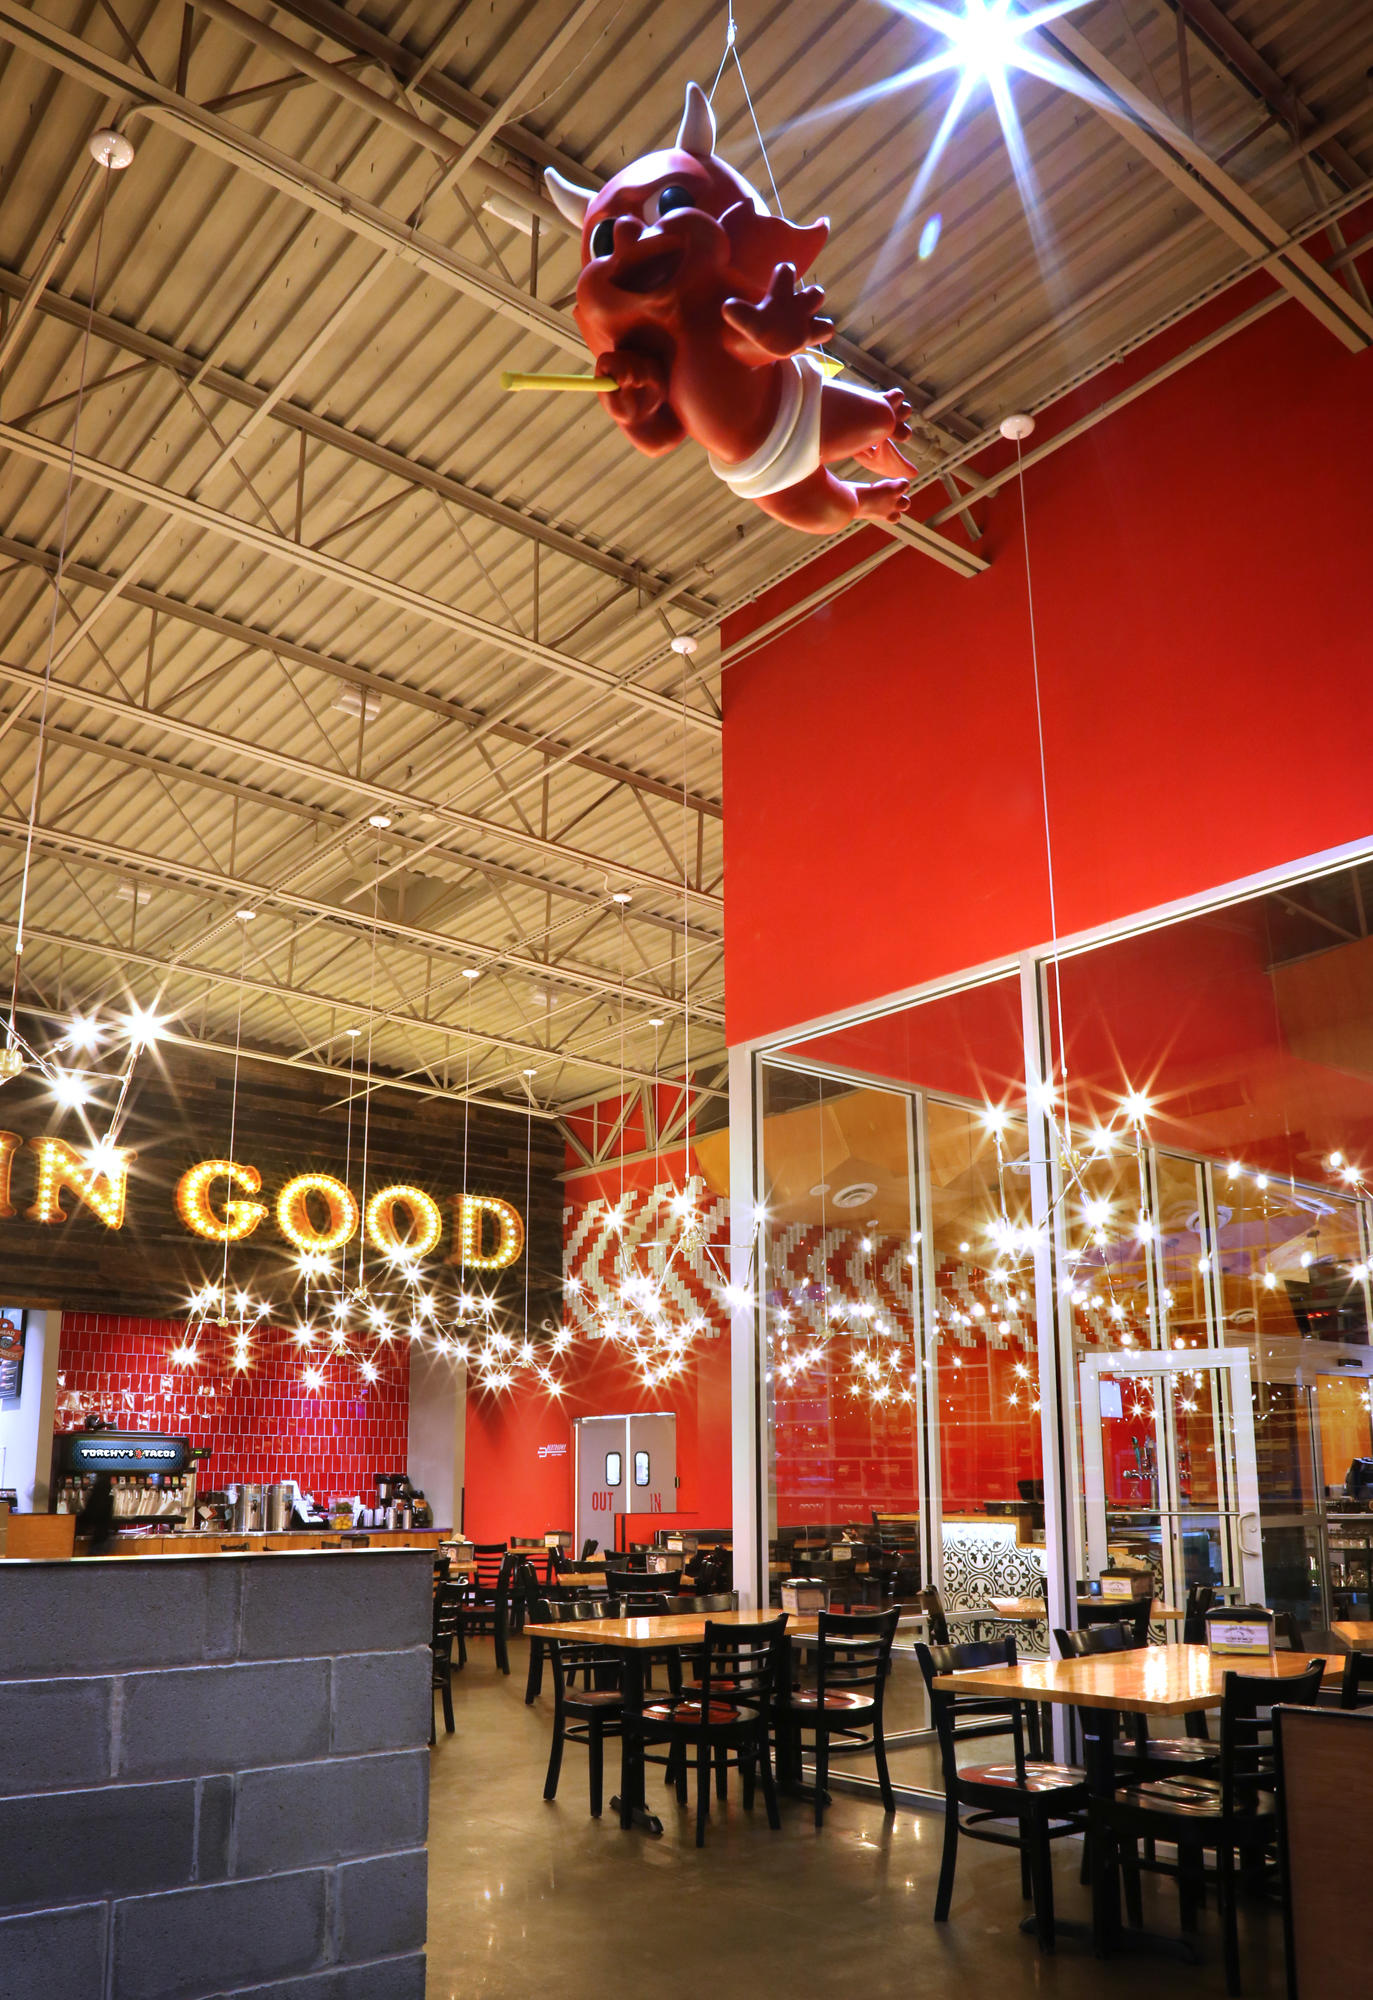 Torchy's Tacos image 2